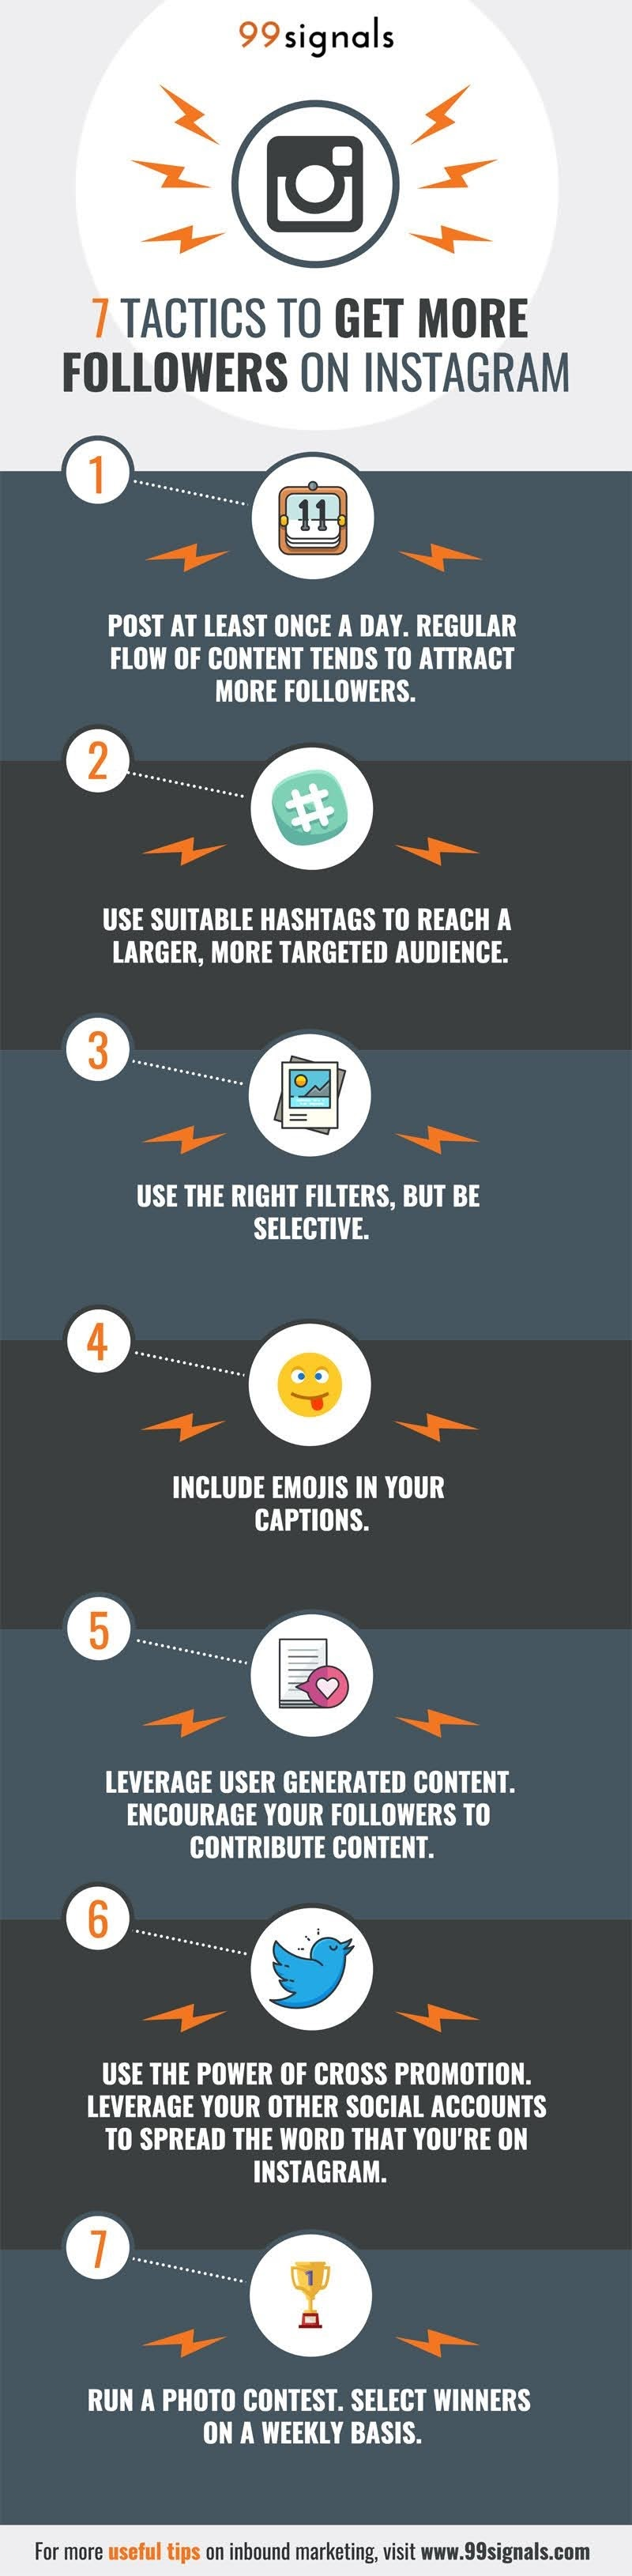 7 (Insanely Simple) Growth Hacking Tactics To Get More Instagram Followers #infographic